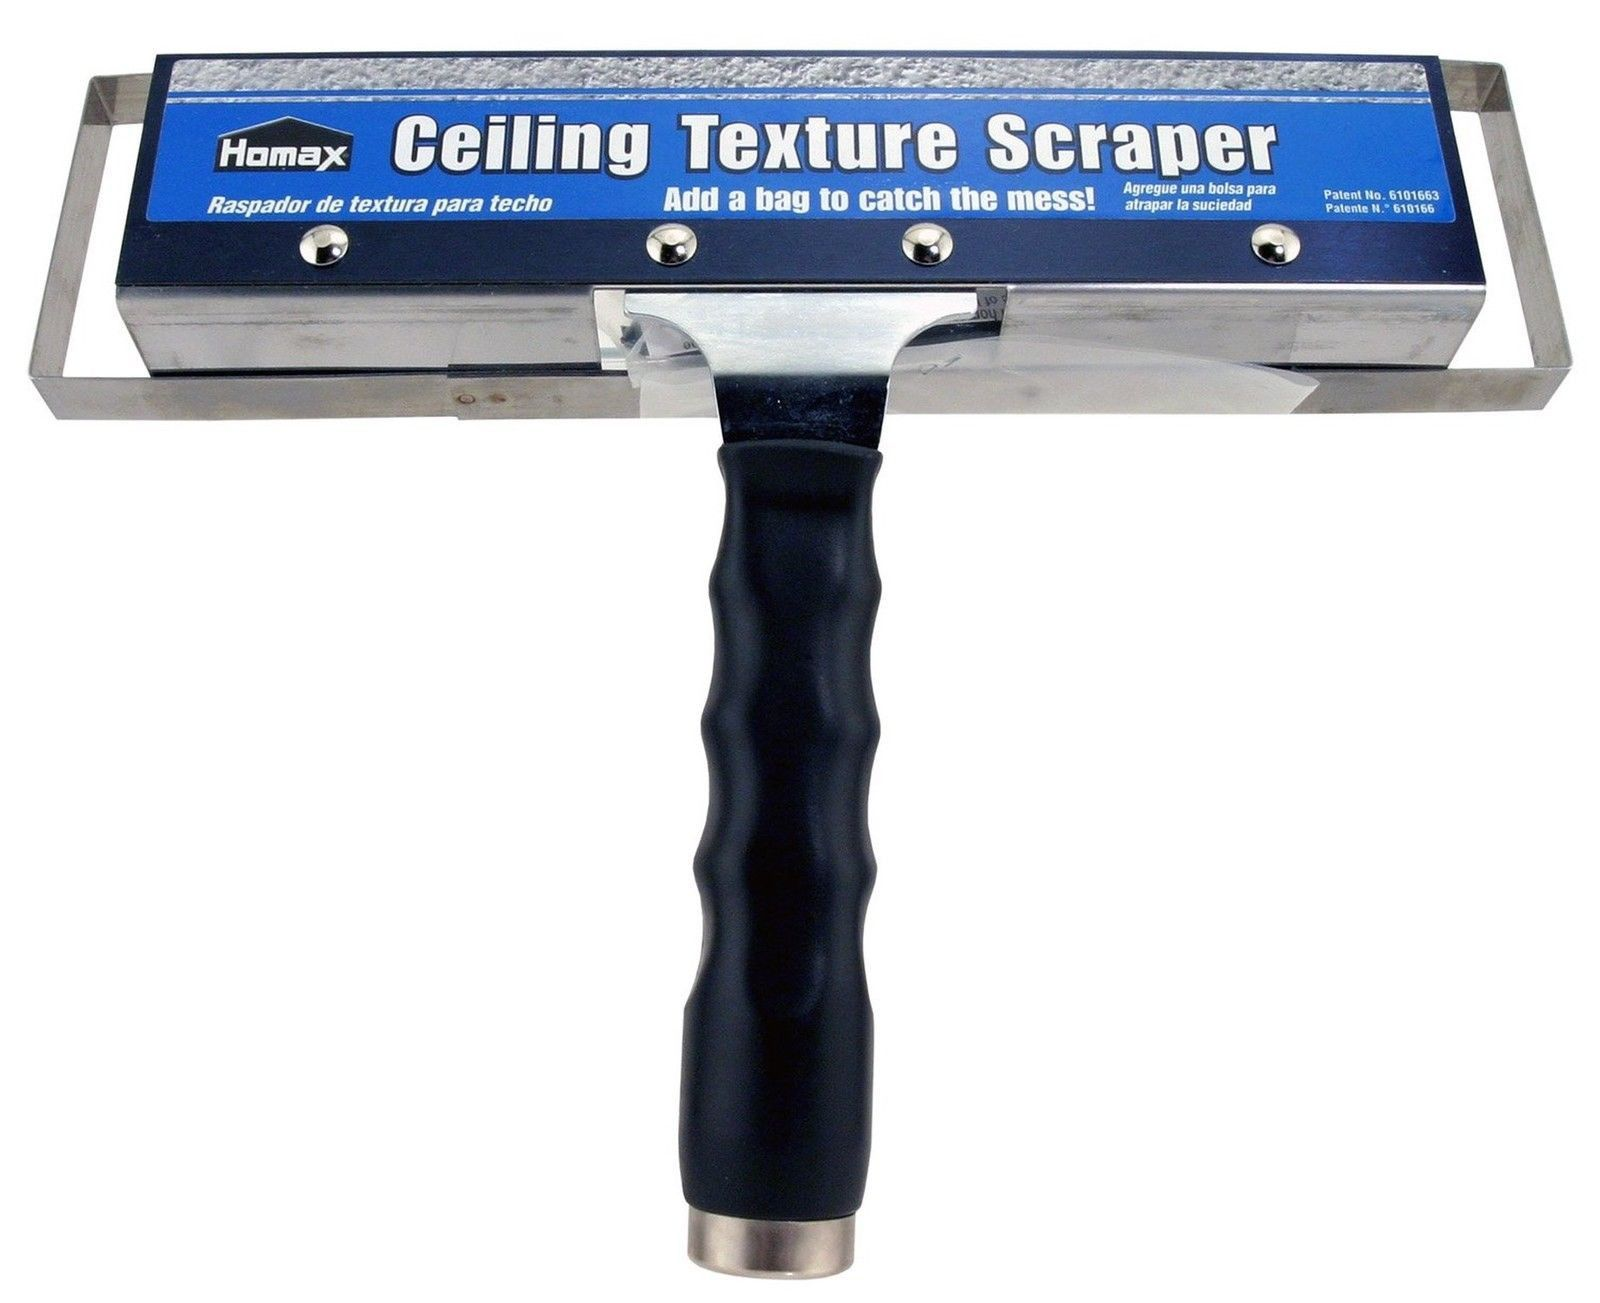 Homax 6100 Ceiling Texture Scraper 12 Inch With Images Ceiling